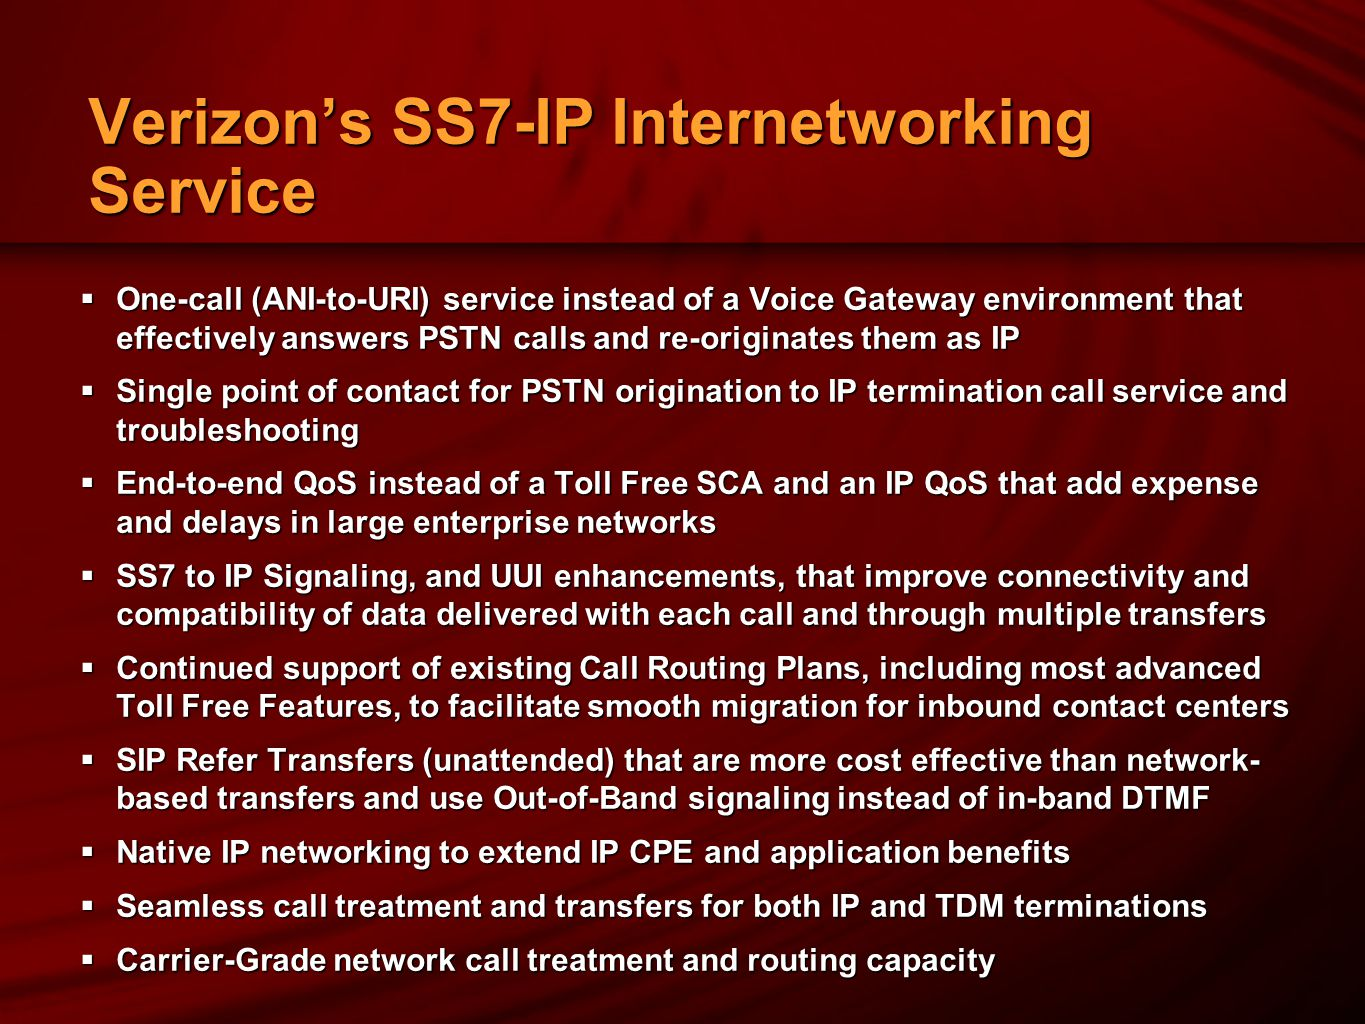 Verizon's SS7-IP Internetworking Service  One-call (ANI-to-URI) service instead of a Voice Gateway environment that effectively answers PSTN calls and re-originates them as IP  Single point of contact for PSTN origination to IP termination call service and troubleshooting  End-to-end QoS instead of a Toll Free SCA and an IP QoS that add expense and delays in large enterprise networks  SS7 to IP Signaling, and UUI enhancements, that improve connectivity and compatibility of data delivered with each call and through multiple transfers  Continued support of existing Call Routing Plans, including most advanced Toll Free Features, to facilitate smooth migration for inbound contact centers  SIP Refer Transfers (unattended) that are more cost effective than network- based transfers and use Out-of-Band signaling instead of in-band DTMF  Native IP networking to extend IP CPE and application benefits  Seamless call treatment and transfers for both IP and TDM terminations  Carrier-Grade network call treatment and routing capacity